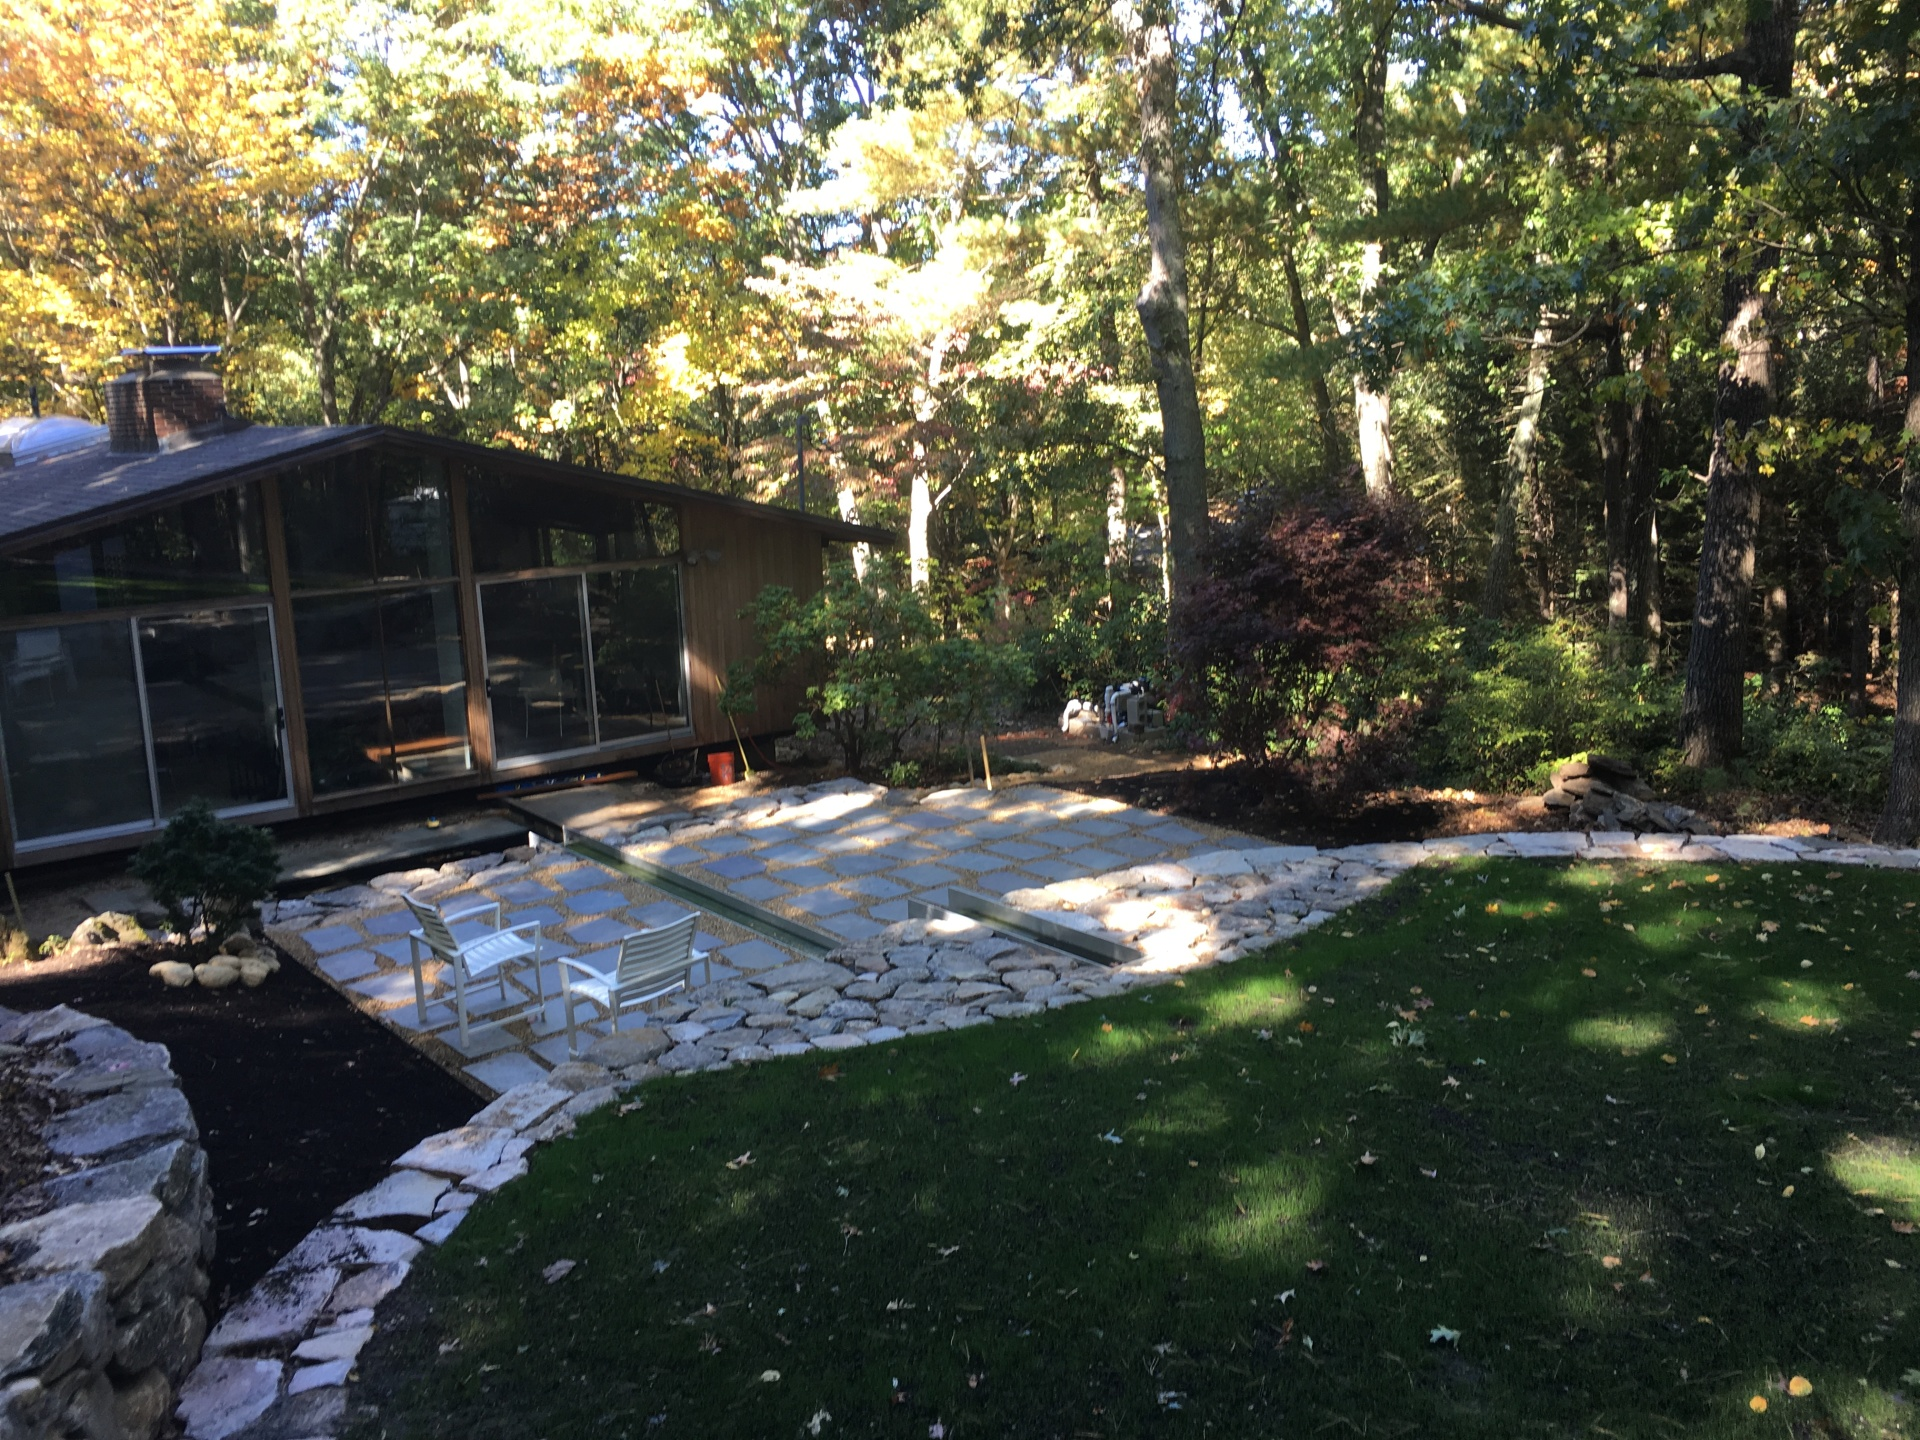 Modernist woodland home with elegant channel of water running through a patio,